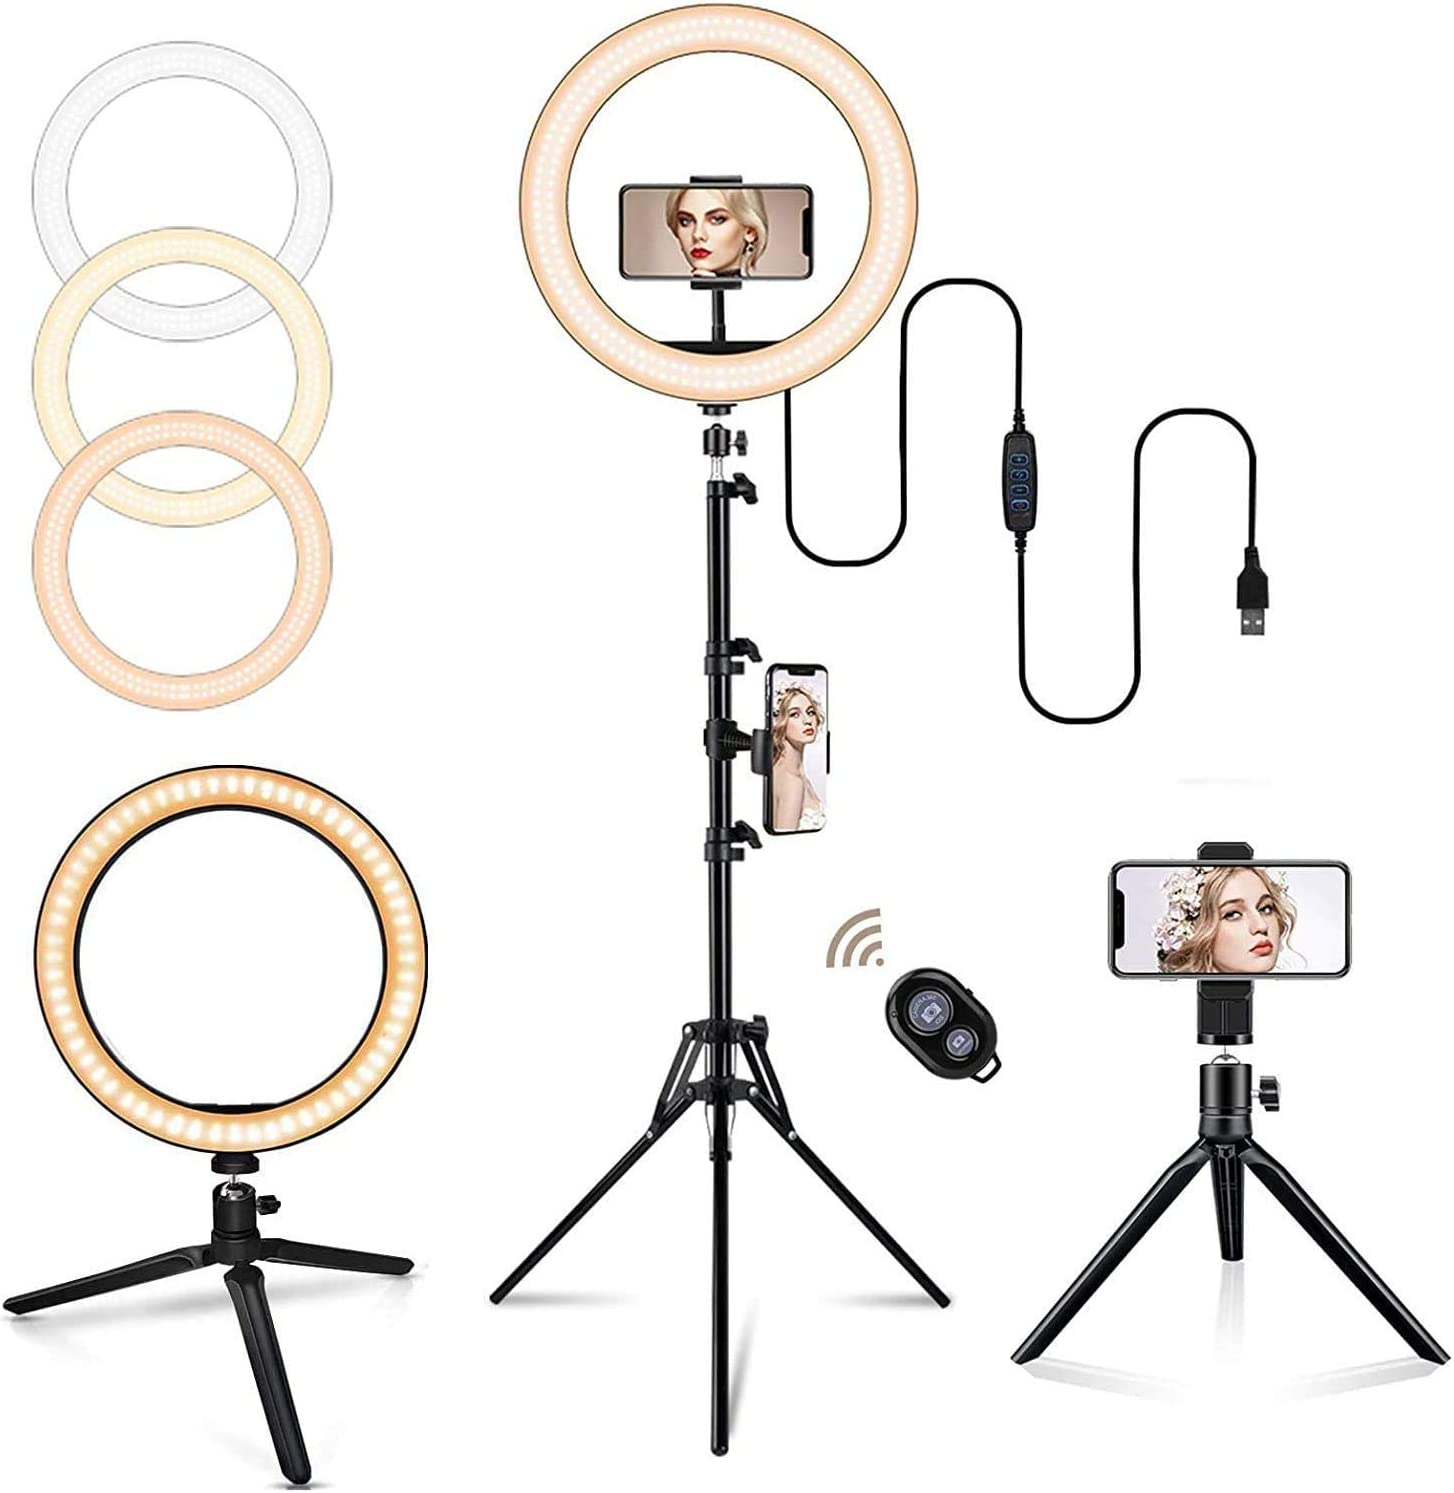 """Selfie Ring Light with Tripod Stand, 10"""" LED Ring Light with 3 Light Modes 10 Brightness, Dimmable Makeup Light for YouTube TIK Tok Live Streaming Compatible for iPhone Android Phone…"""